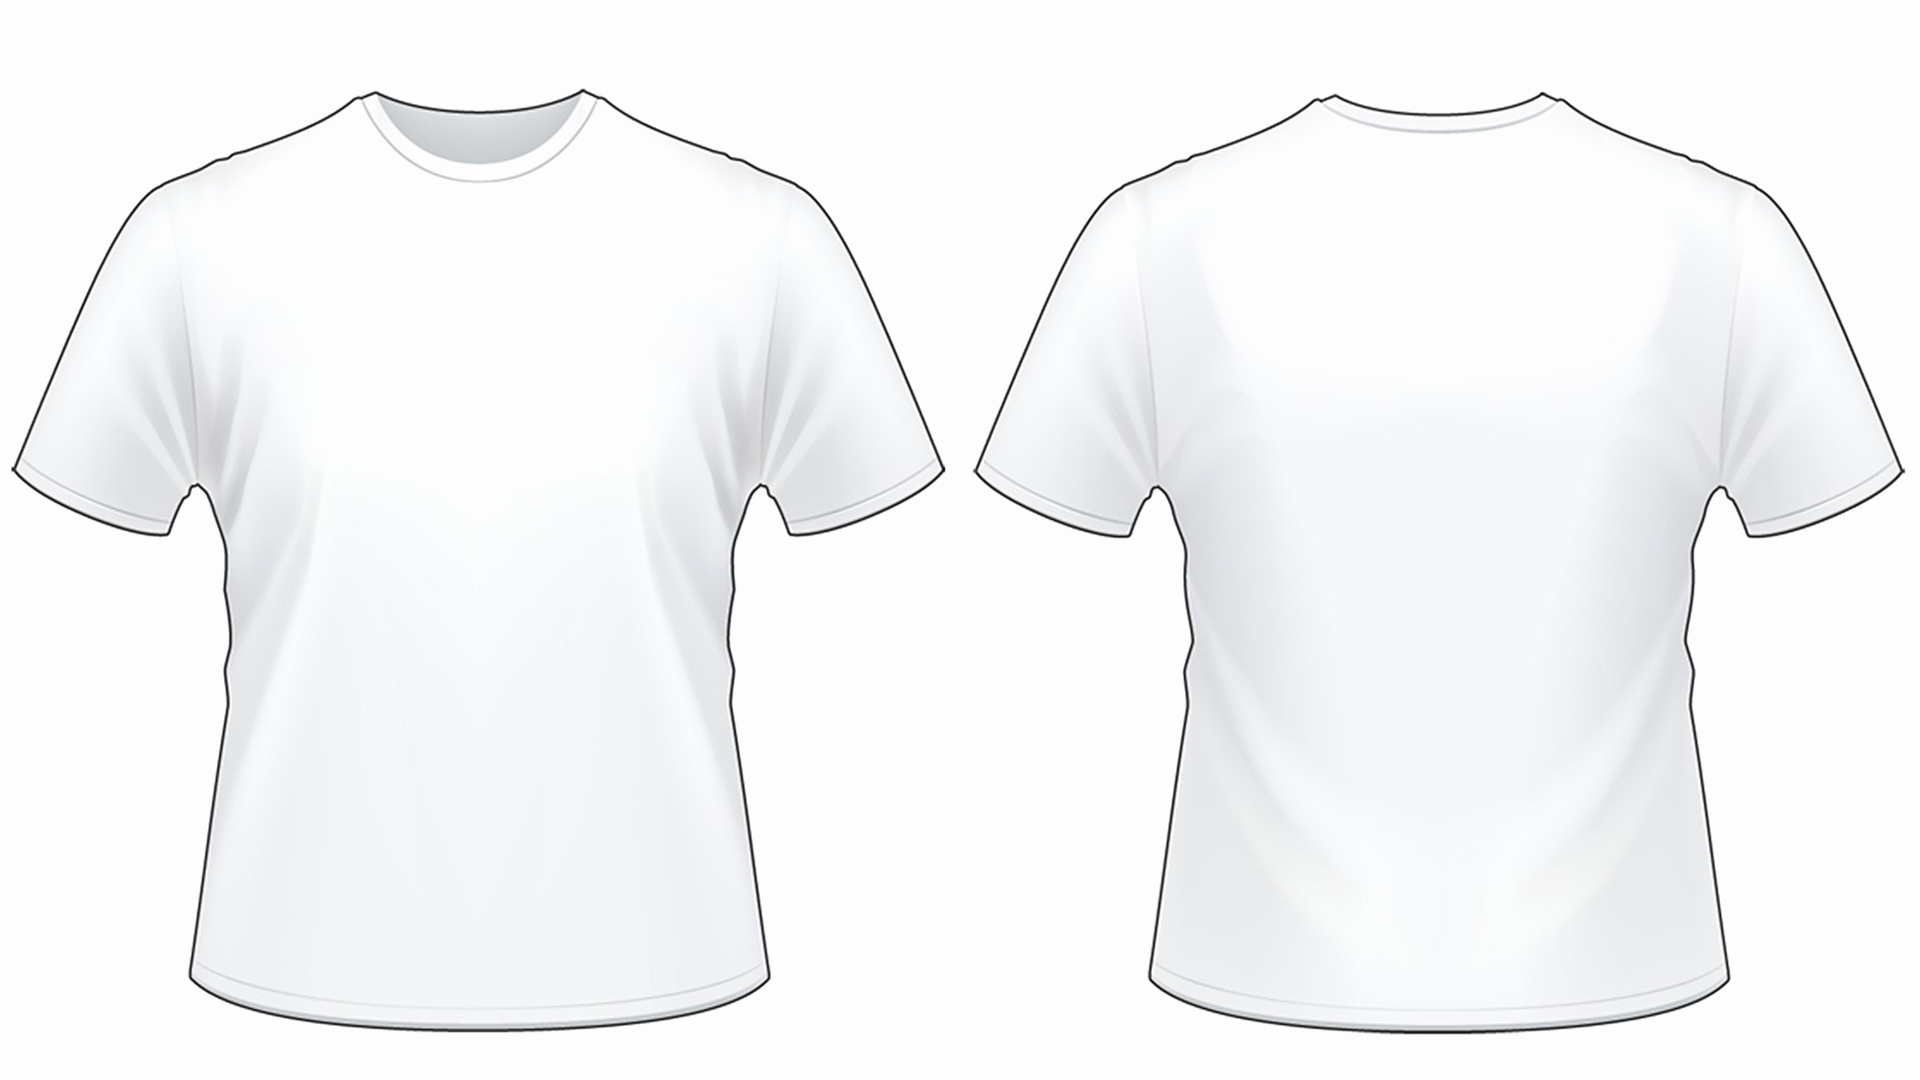 Blank Tshirt Template Awesome Blank Tshirt Template Worksheet In Png Download